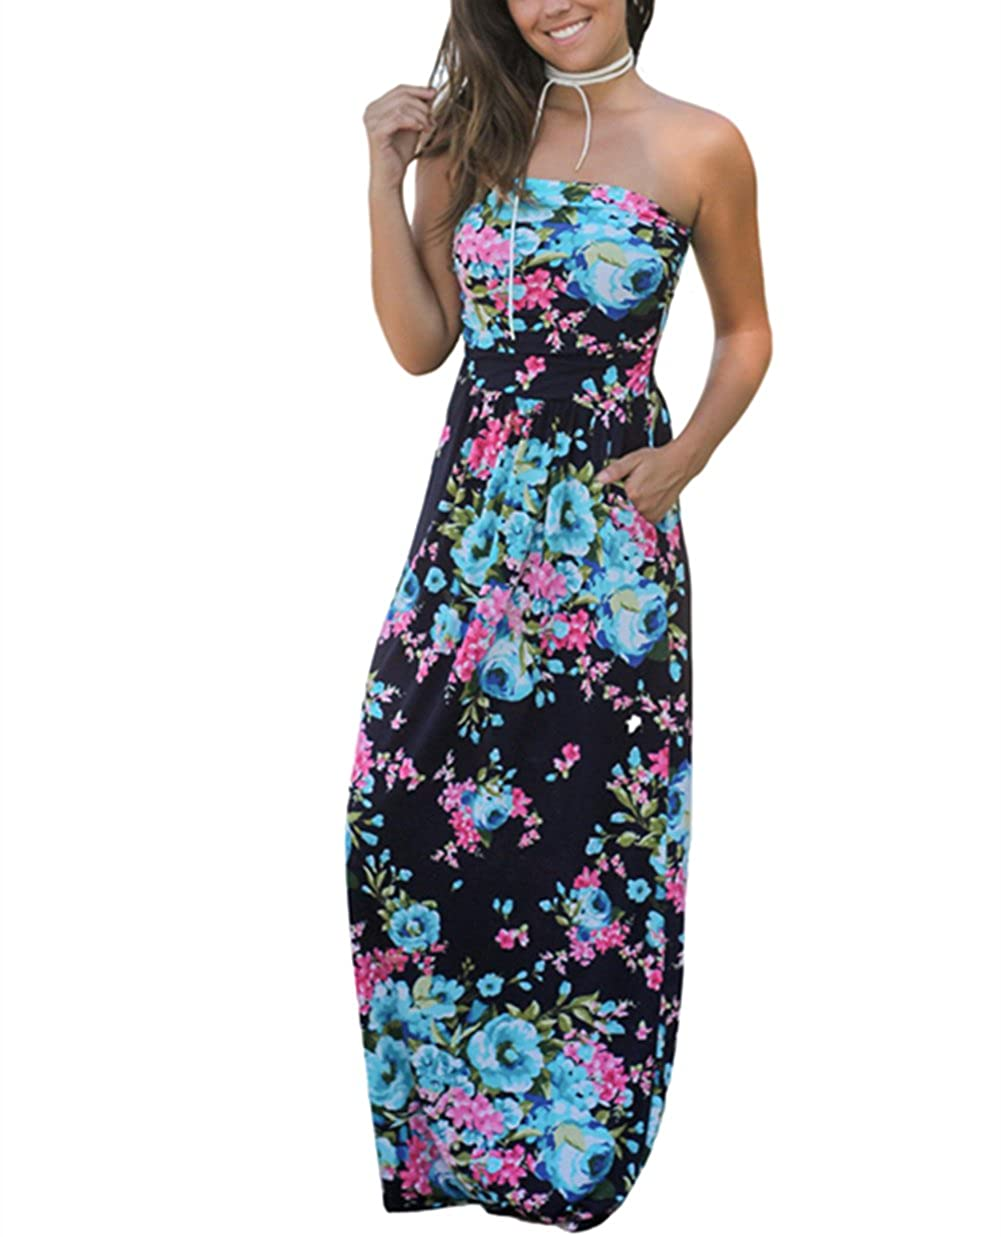 b88c116729c Features  Boho Floral Print  Wrapped Chest  Empire Waist  Two Side Pockets   Floor-Length  Strapless Tube Top  Elegant and Cute Style